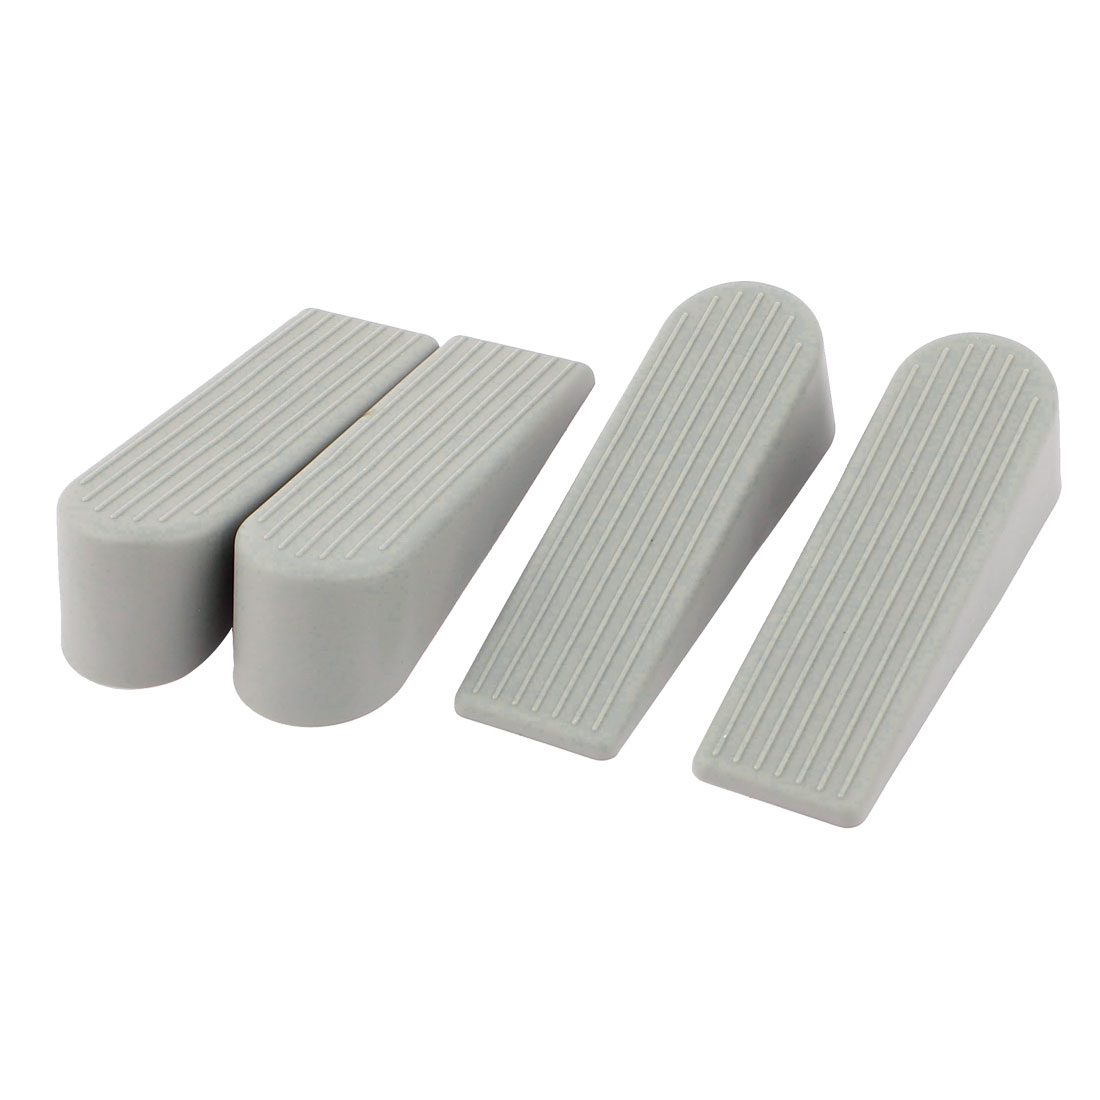 Non Slip Rubber Door Stoppers Stop Doorstop Wedges Jam Block Gray 4pcs